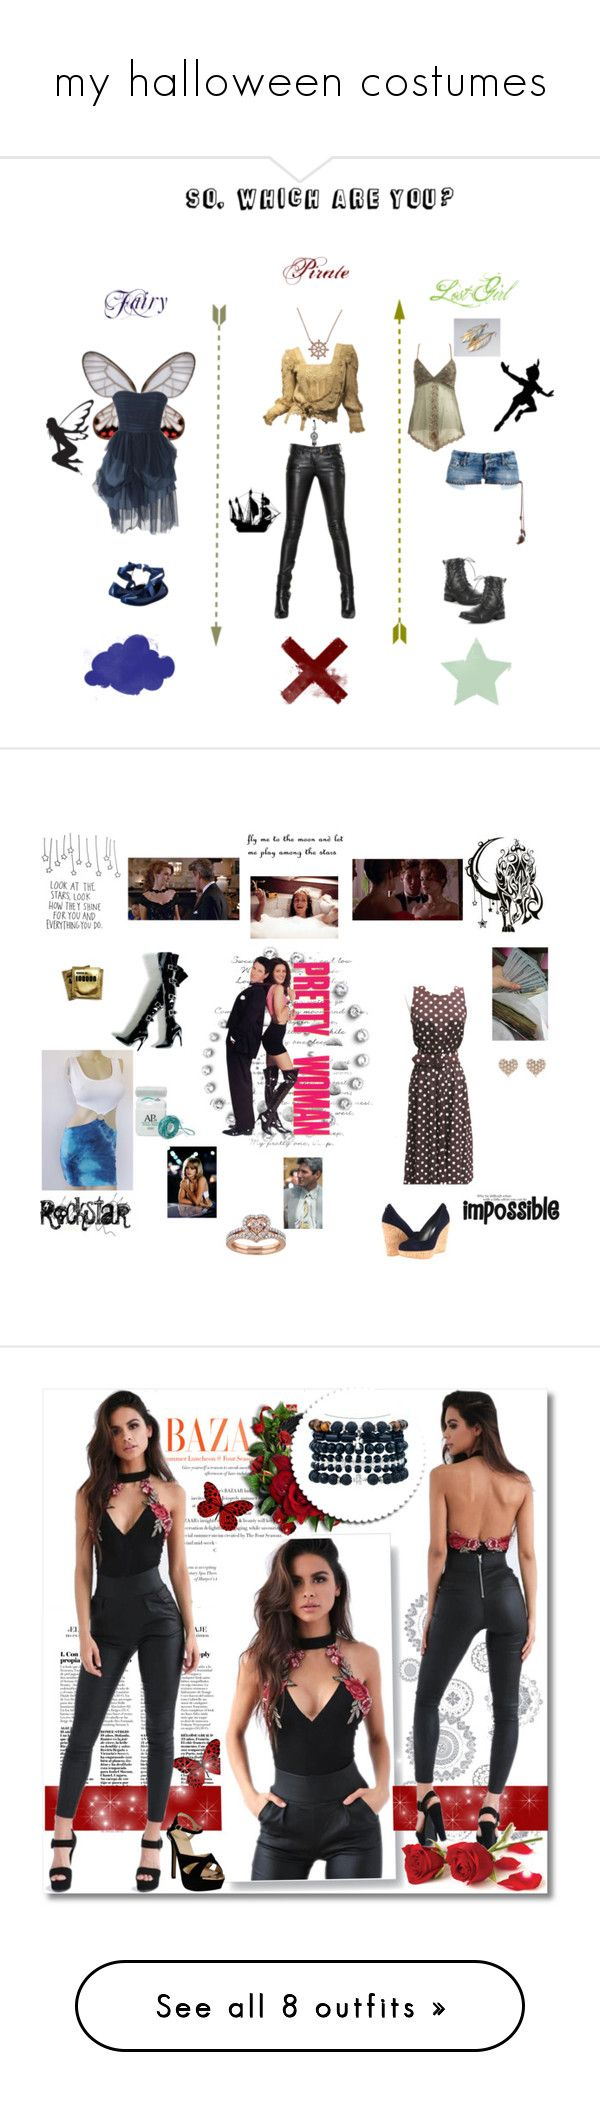 """""""my halloween costumes"""" by surreal-starr ❤ liked on Polyvore featuring Balmain, La Preciosa, Once Upon a Time, CLEO, Melissa, Wet Seal, Dsquared2, WALL, Wall Pops! and Paul Frank"""